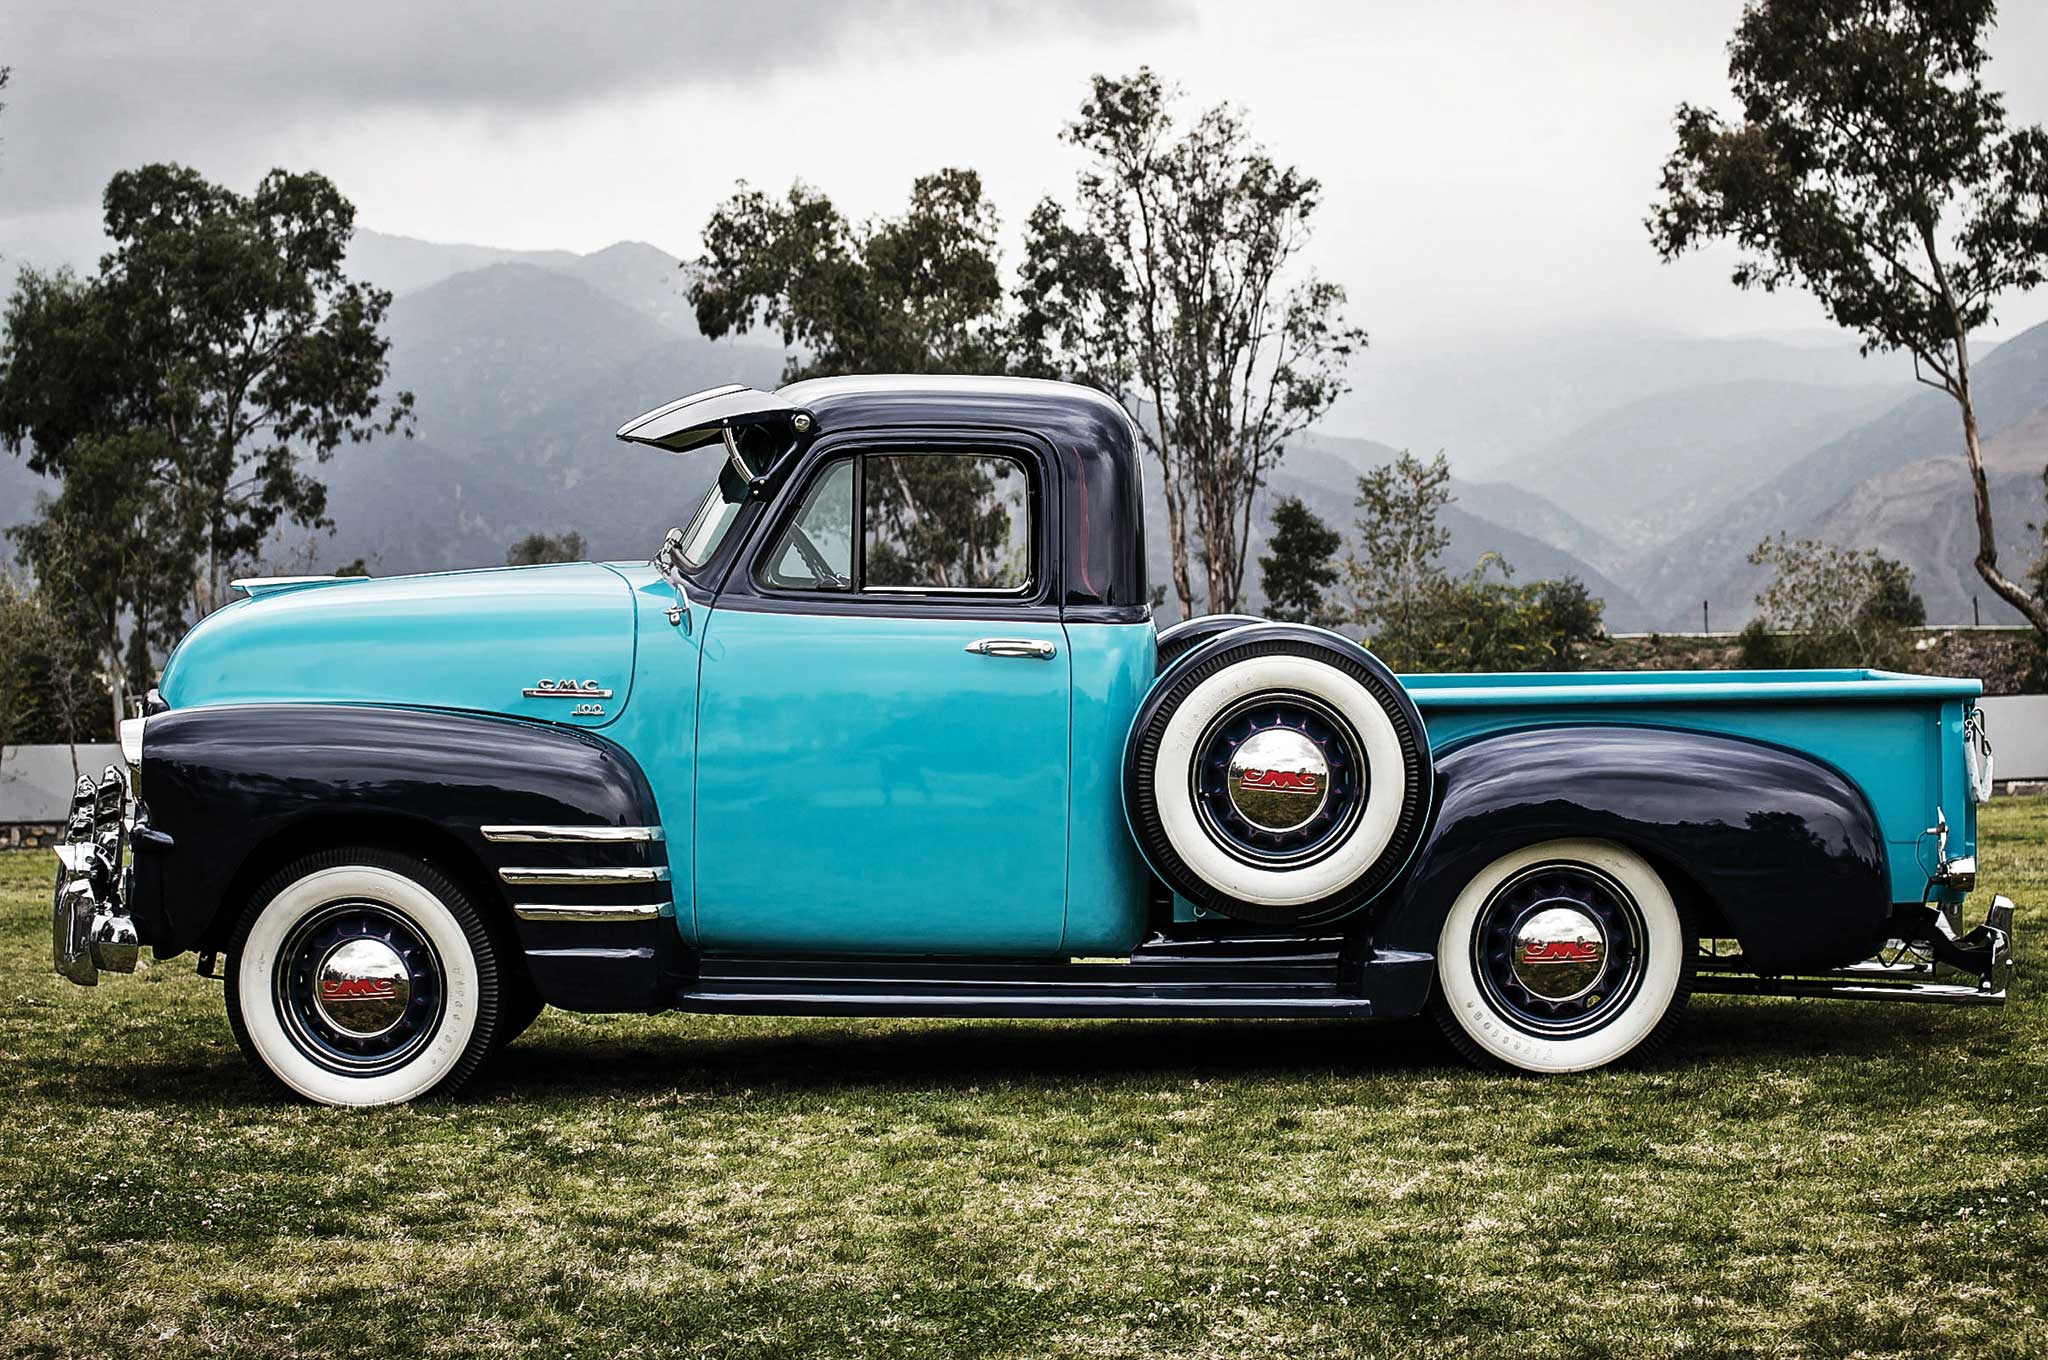 Chevy Truck Wheels >> 1954 GMC Pickup - Generational GMC - Lowrider